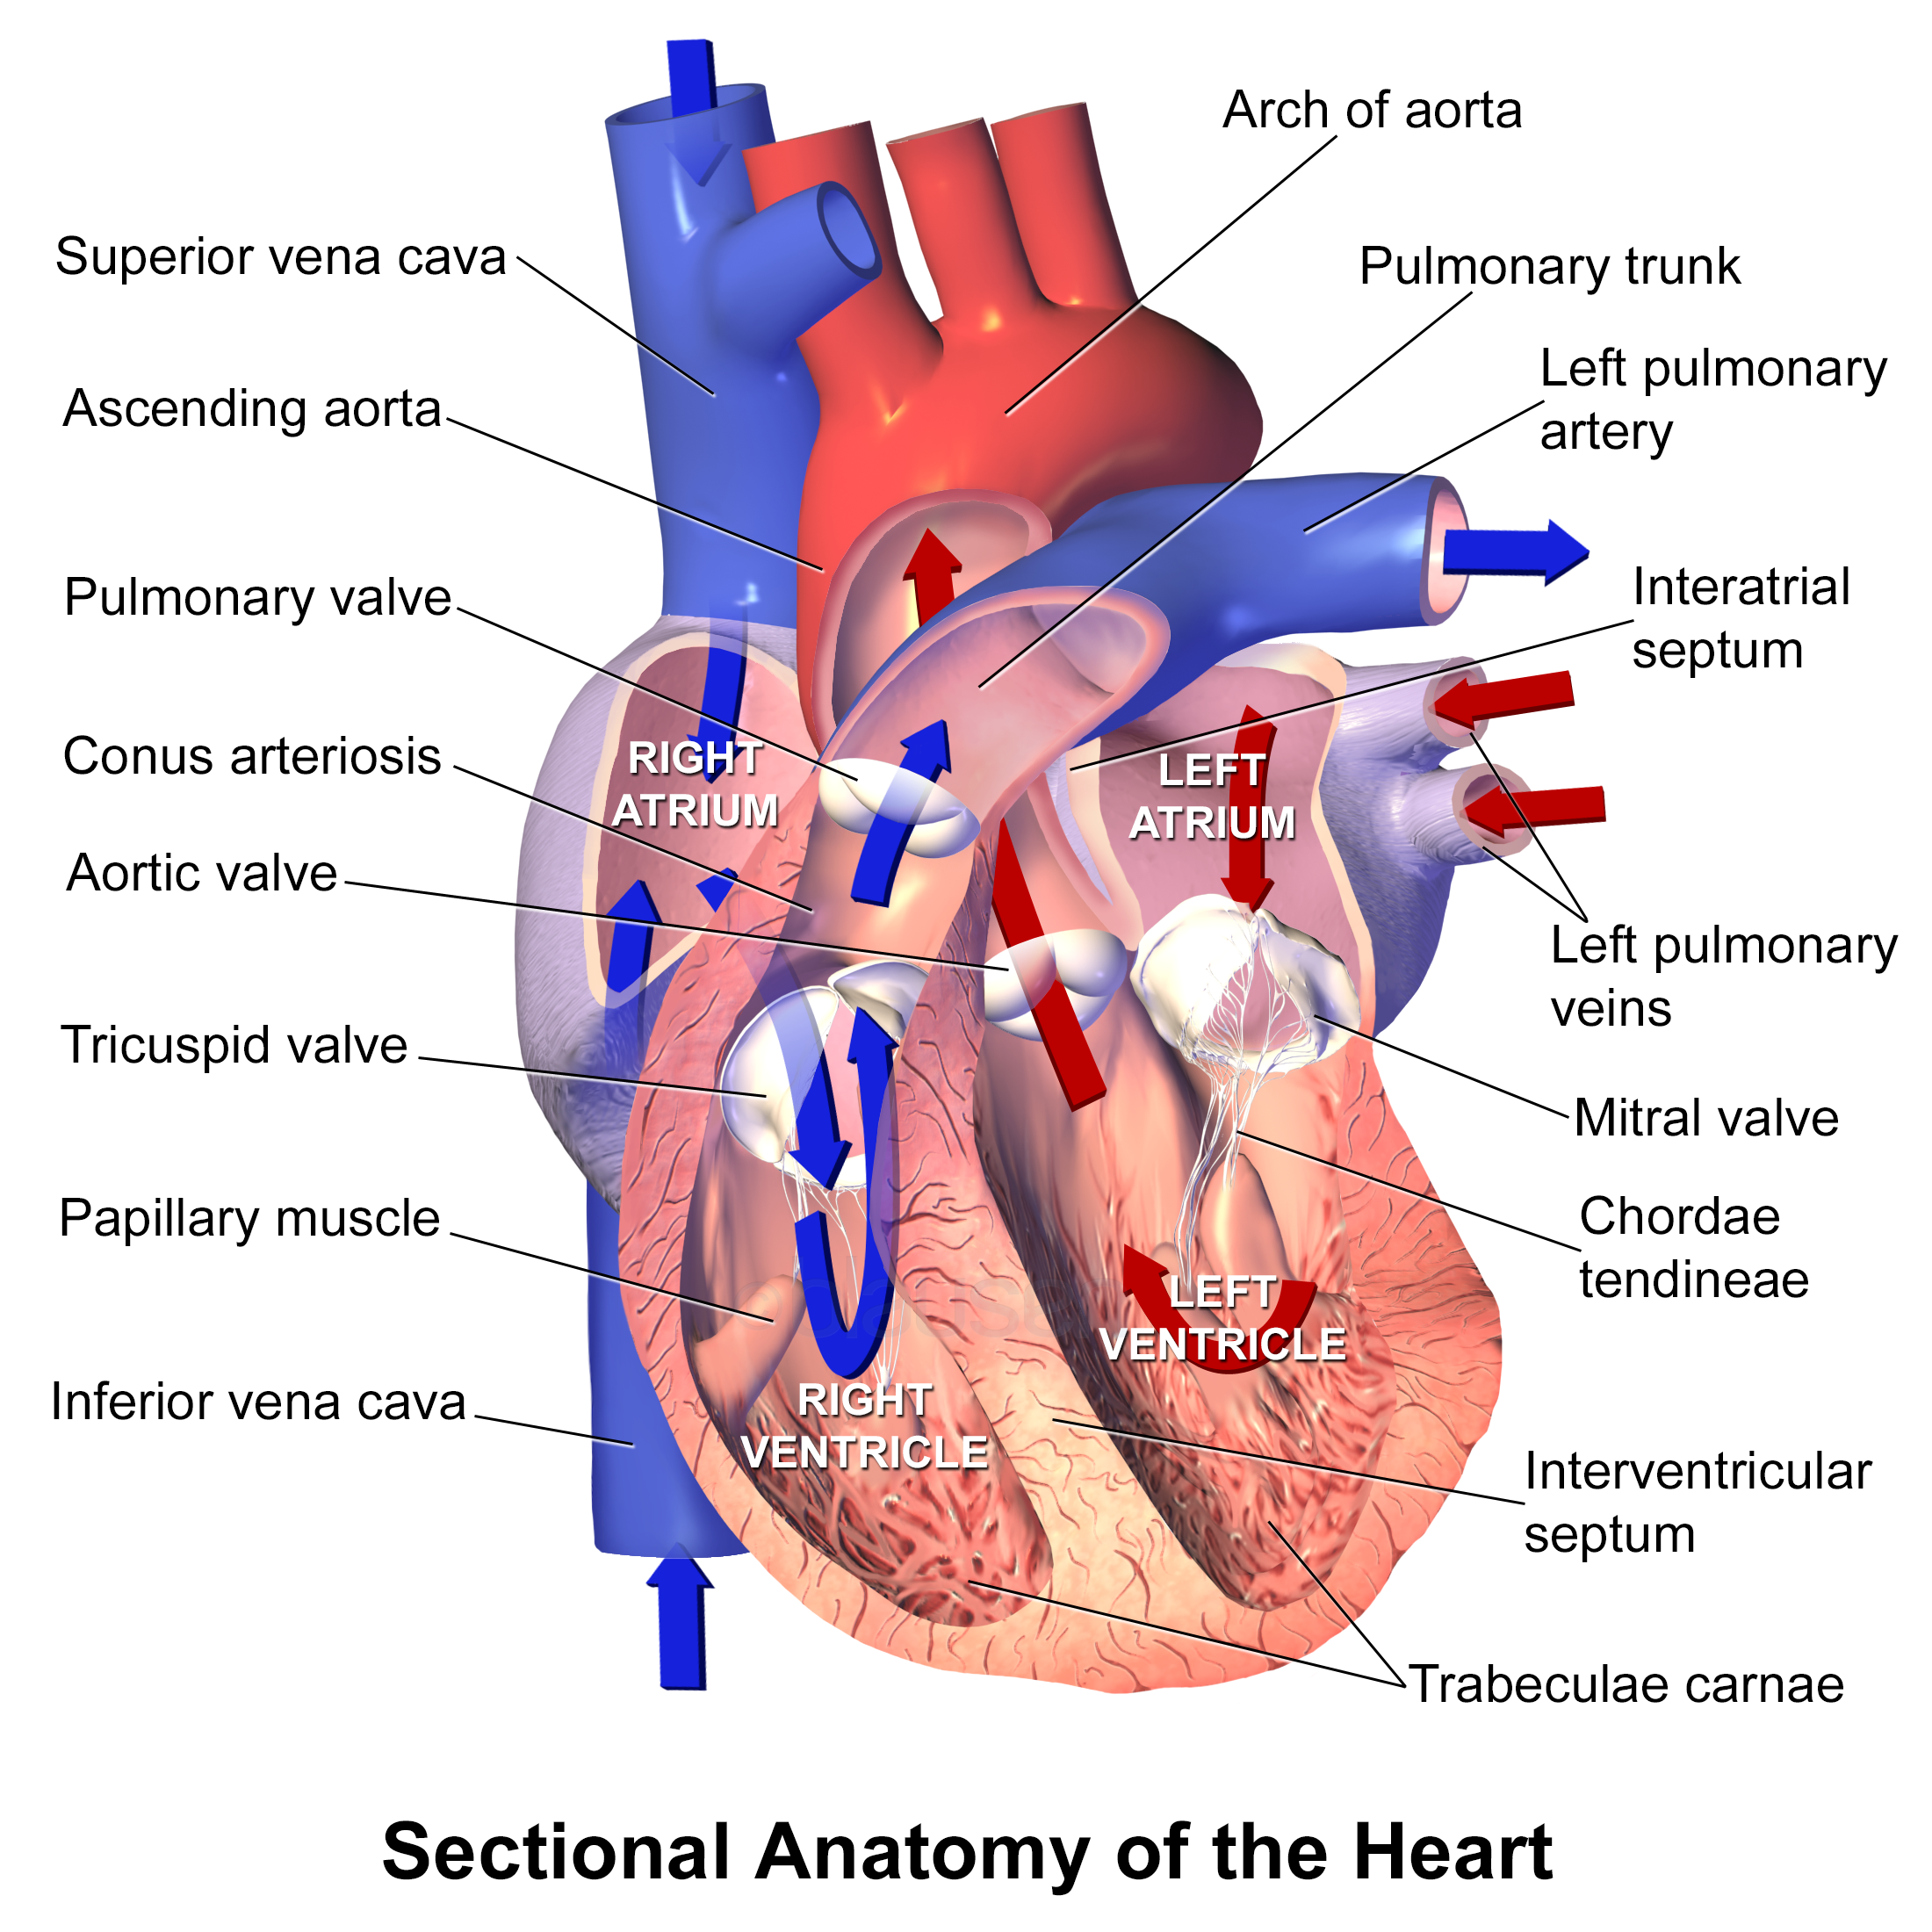 File:Blausen 0457 Heart SectionalAnatomy.png - Wikimedia Commons